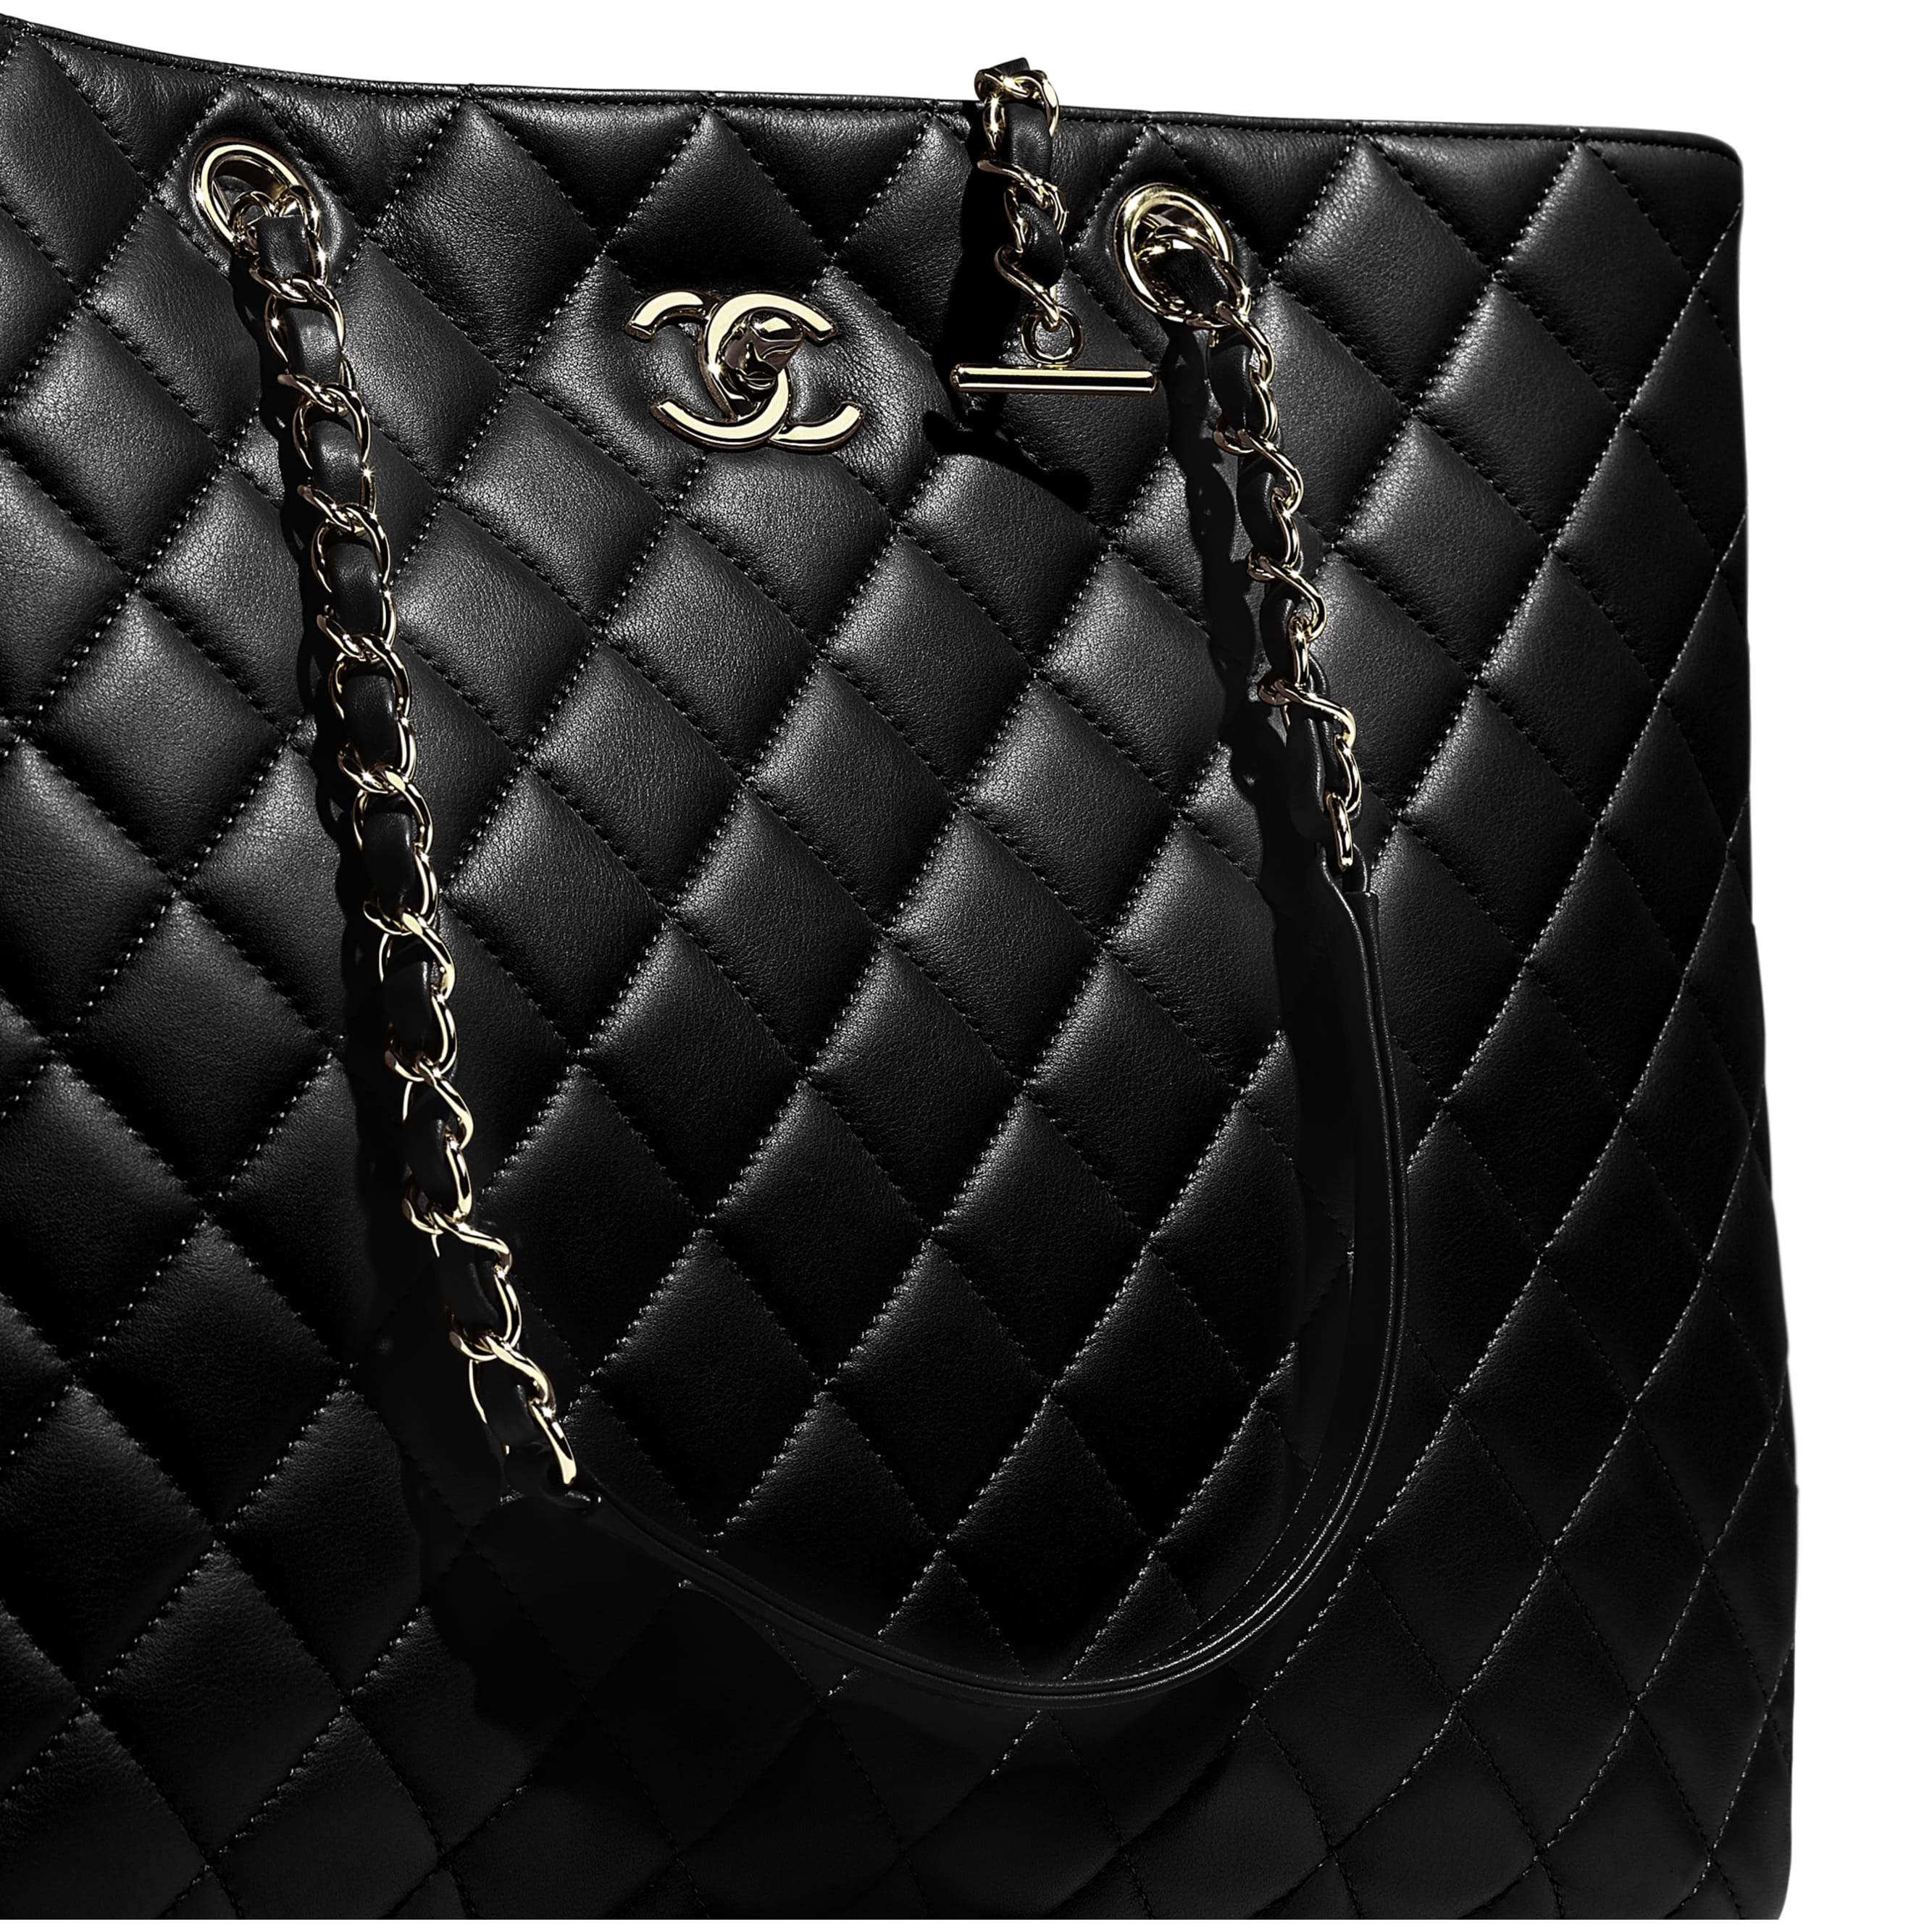 Large Shopping Bag - Black - Calfskin & Gold-Tone Metal - CHANEL - Extra view - see standard sized version